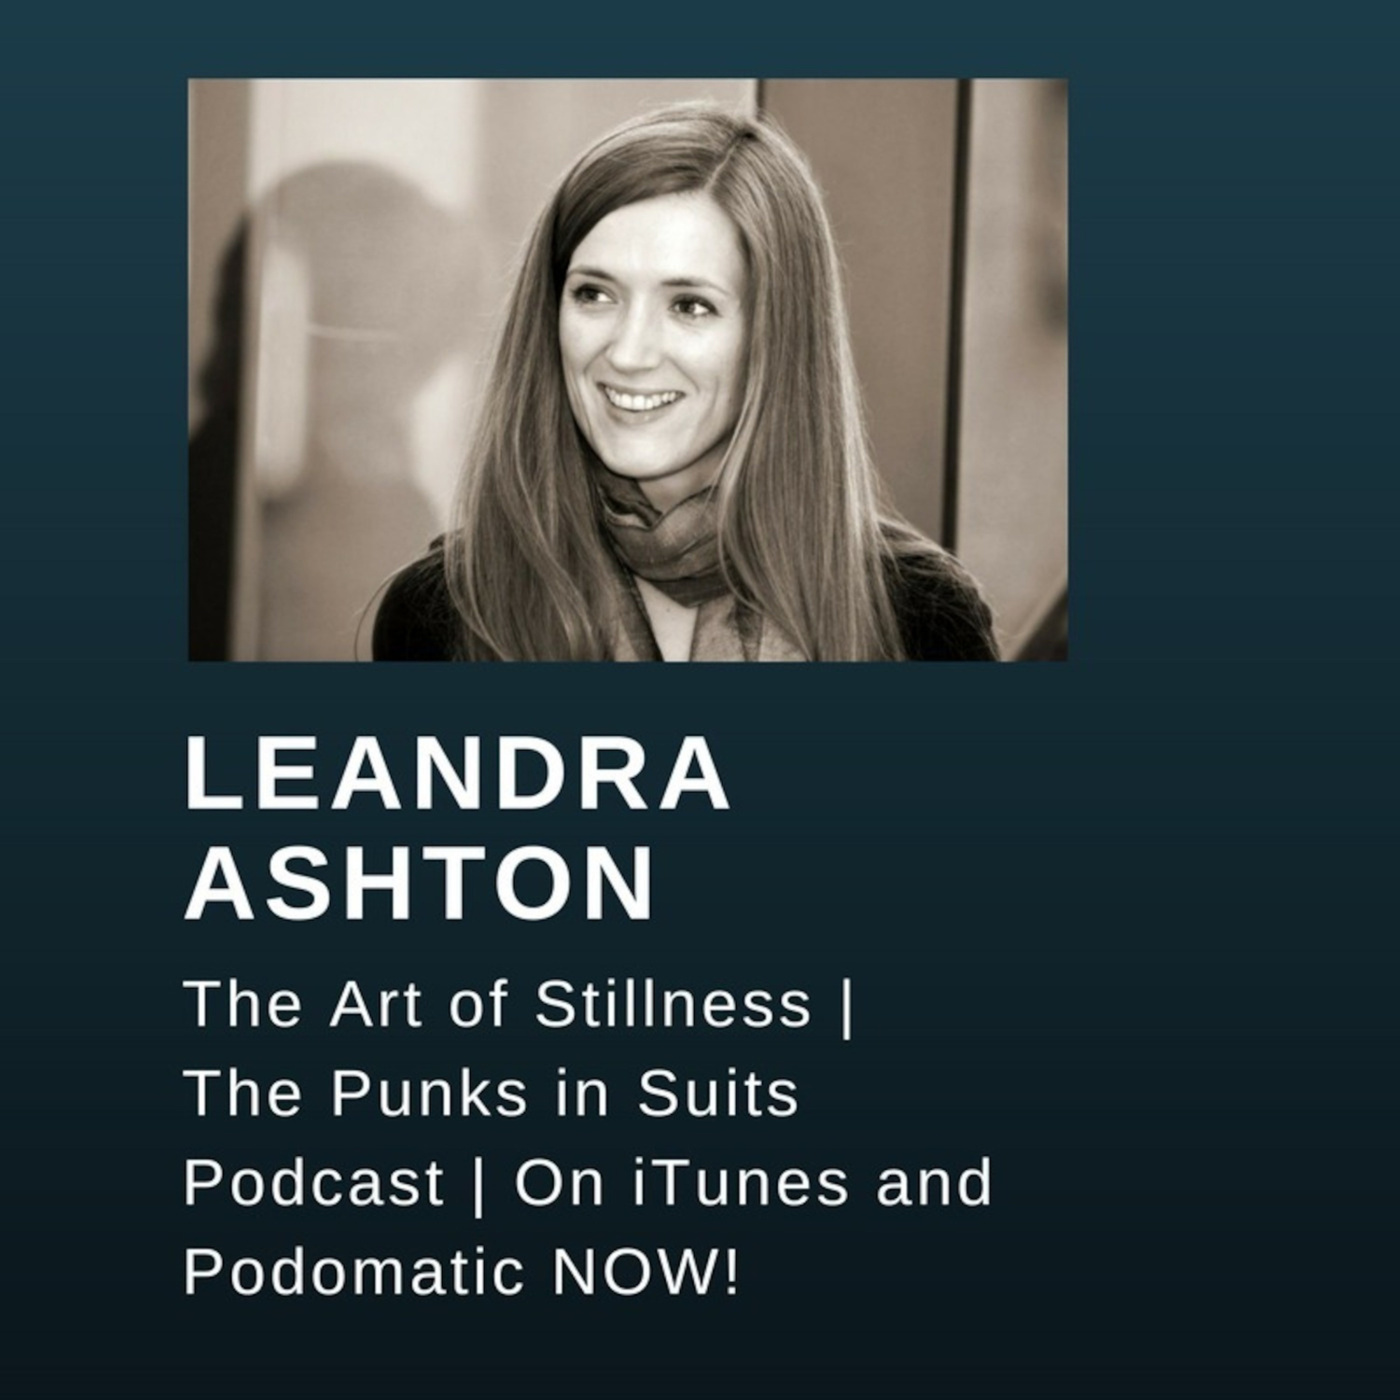 Episode 55: From the Archives - The Art of Stillness with Leandra Ashton